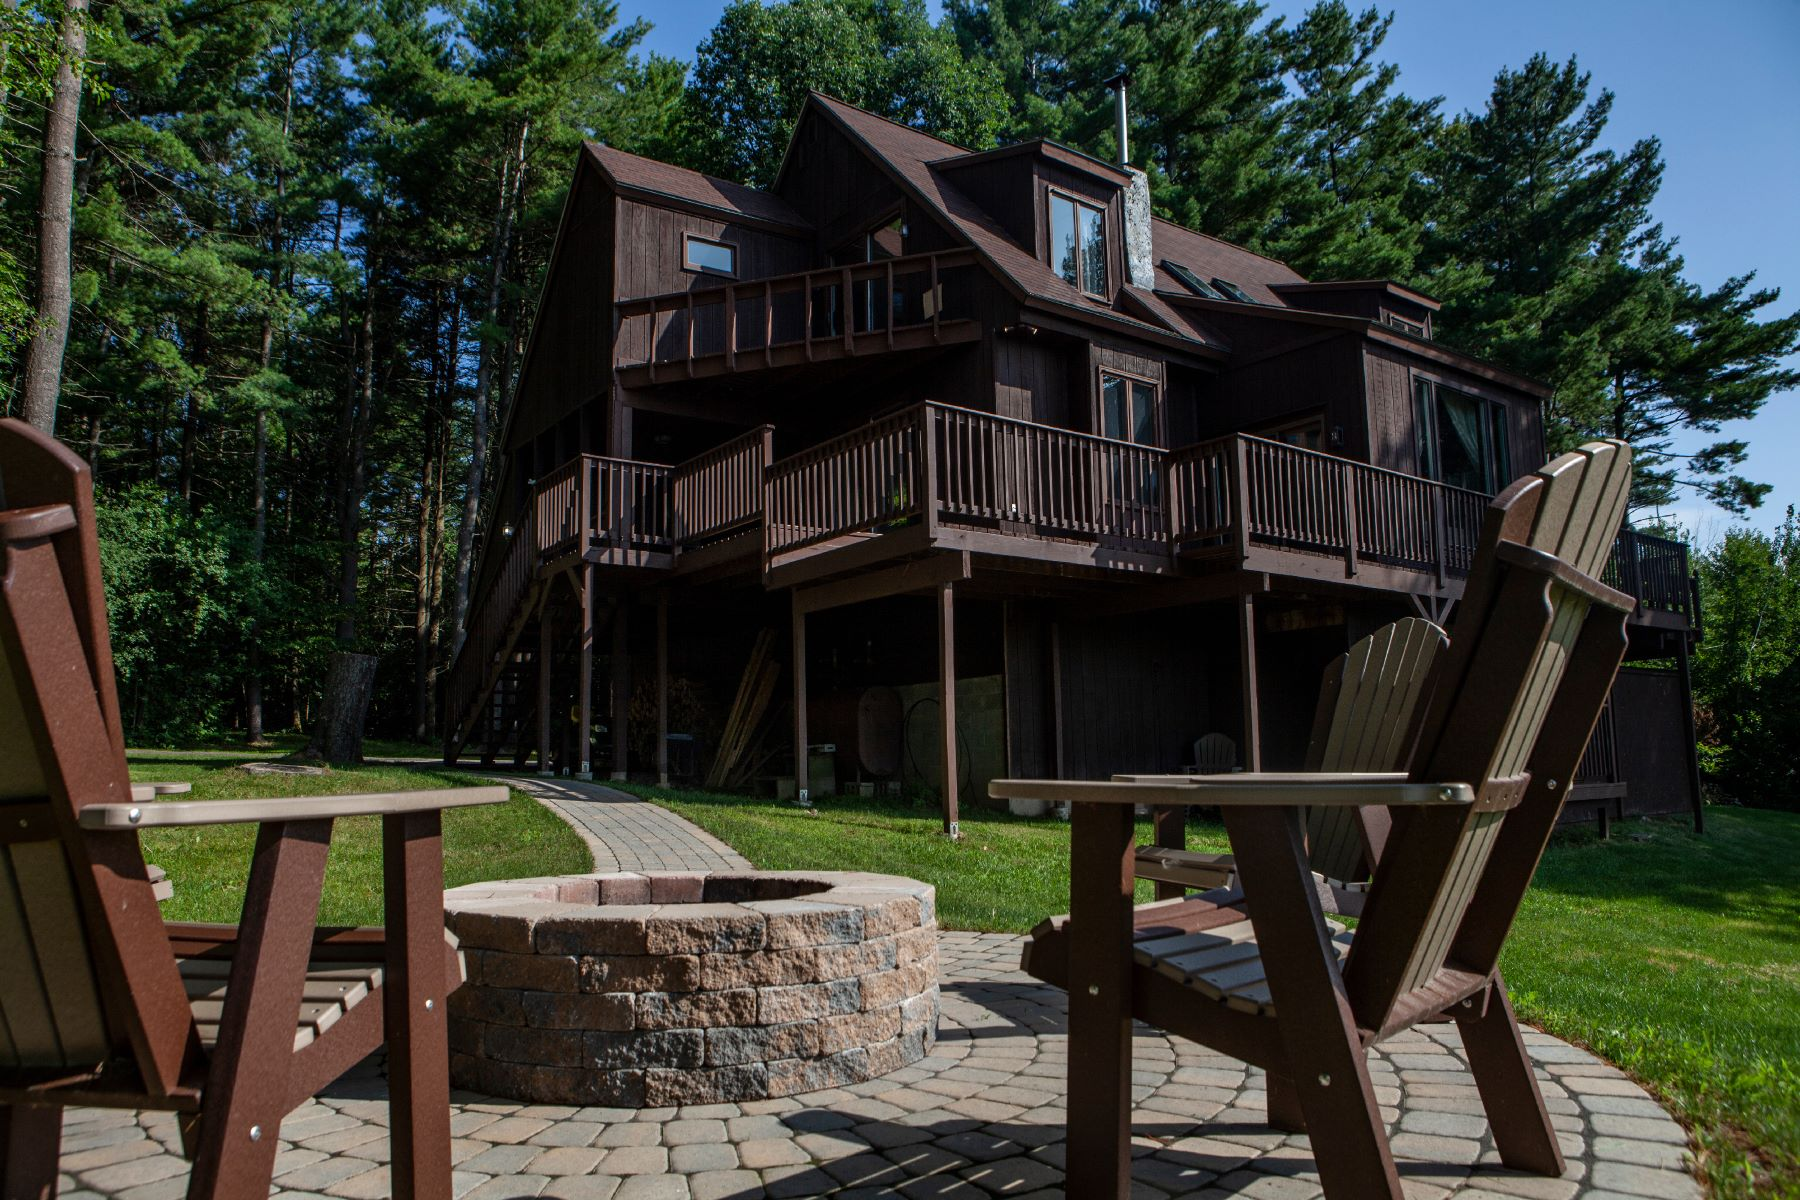 Single Family Homes for Sale at Northern Foothills of the Adirondacks 414 Calkins Road Peru, New York 12972 United States